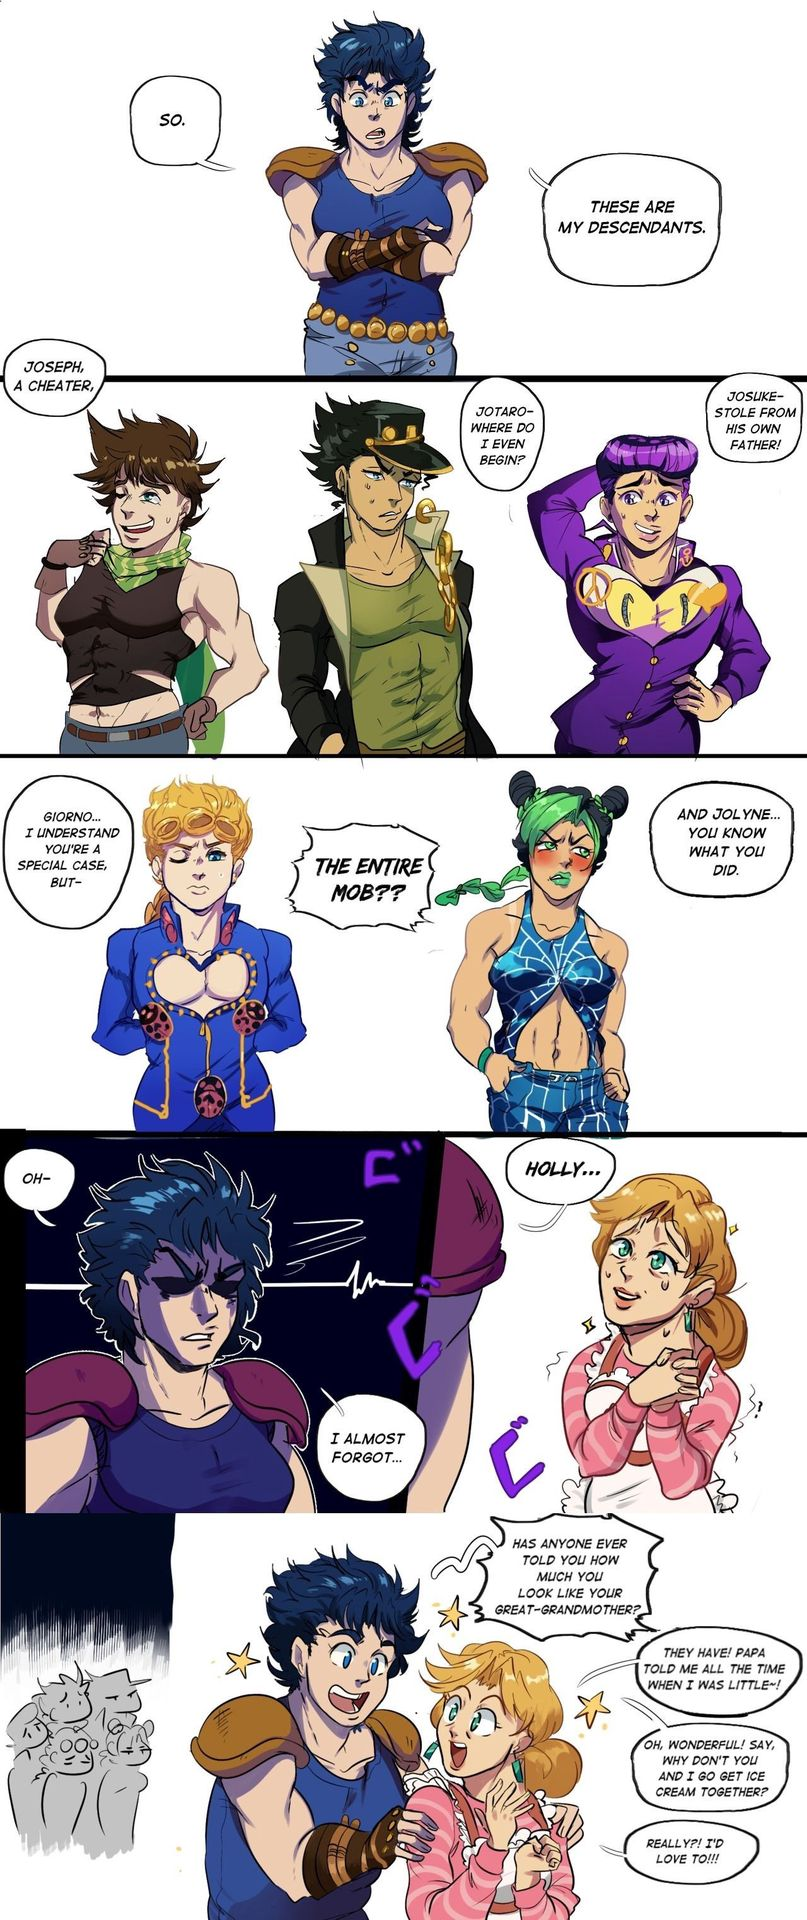 My JoJo Bizarre Adventure OCs & Stands - The JoJo: Jouko